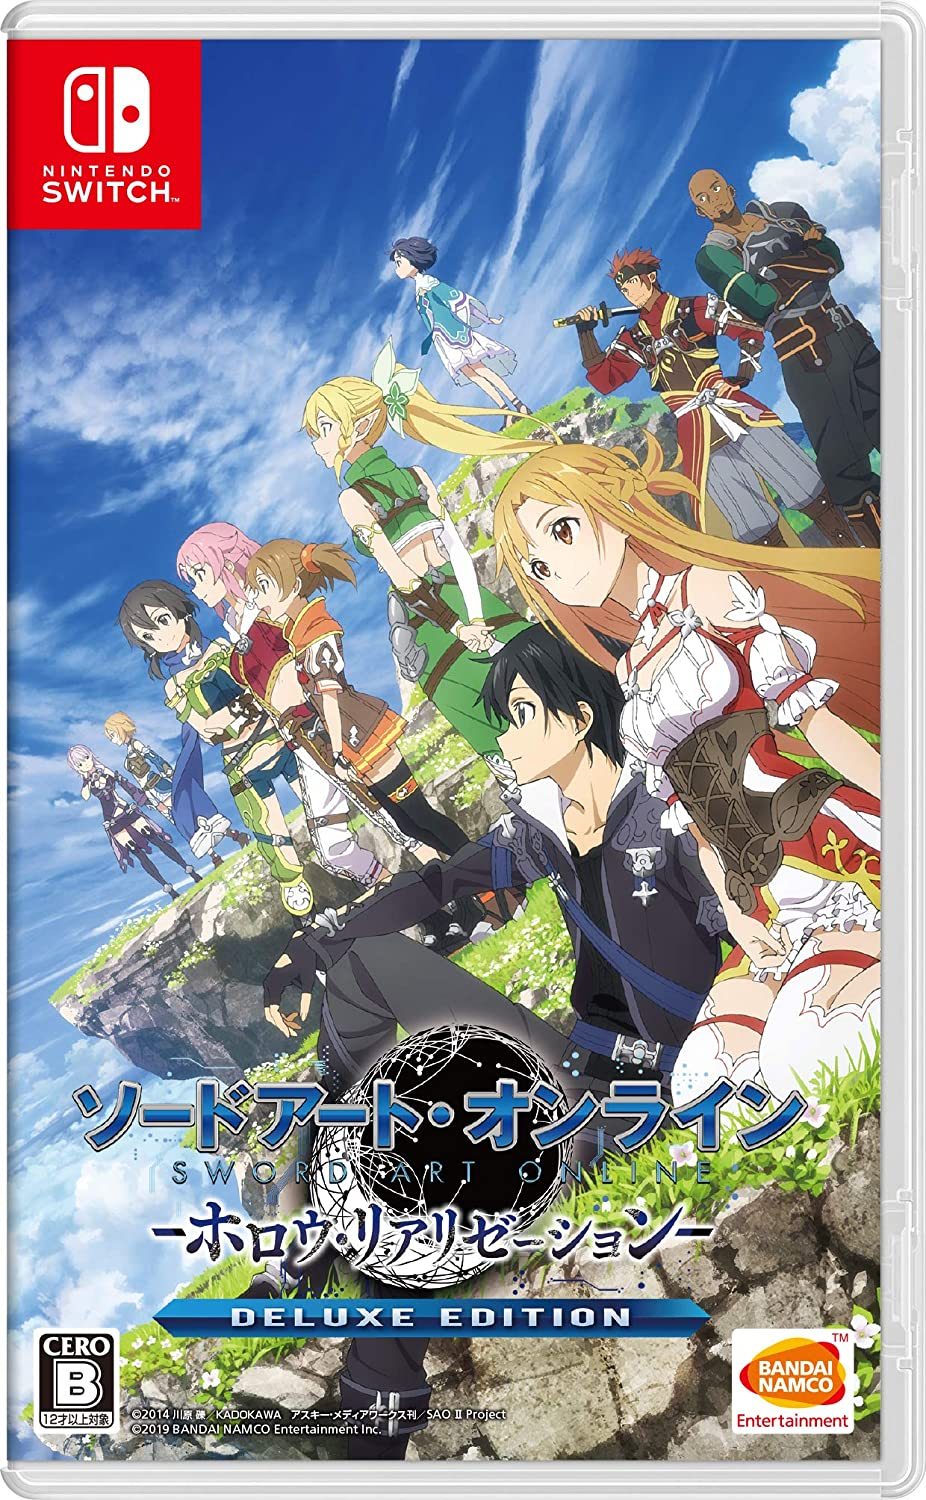 Bandai Namco Games Sword Art Online Hollow Realization Deluxe Edition NINTENDO SWITCH REGION FREE JAPANESE VERSION [video game]: Amazon.es: Videojuegos